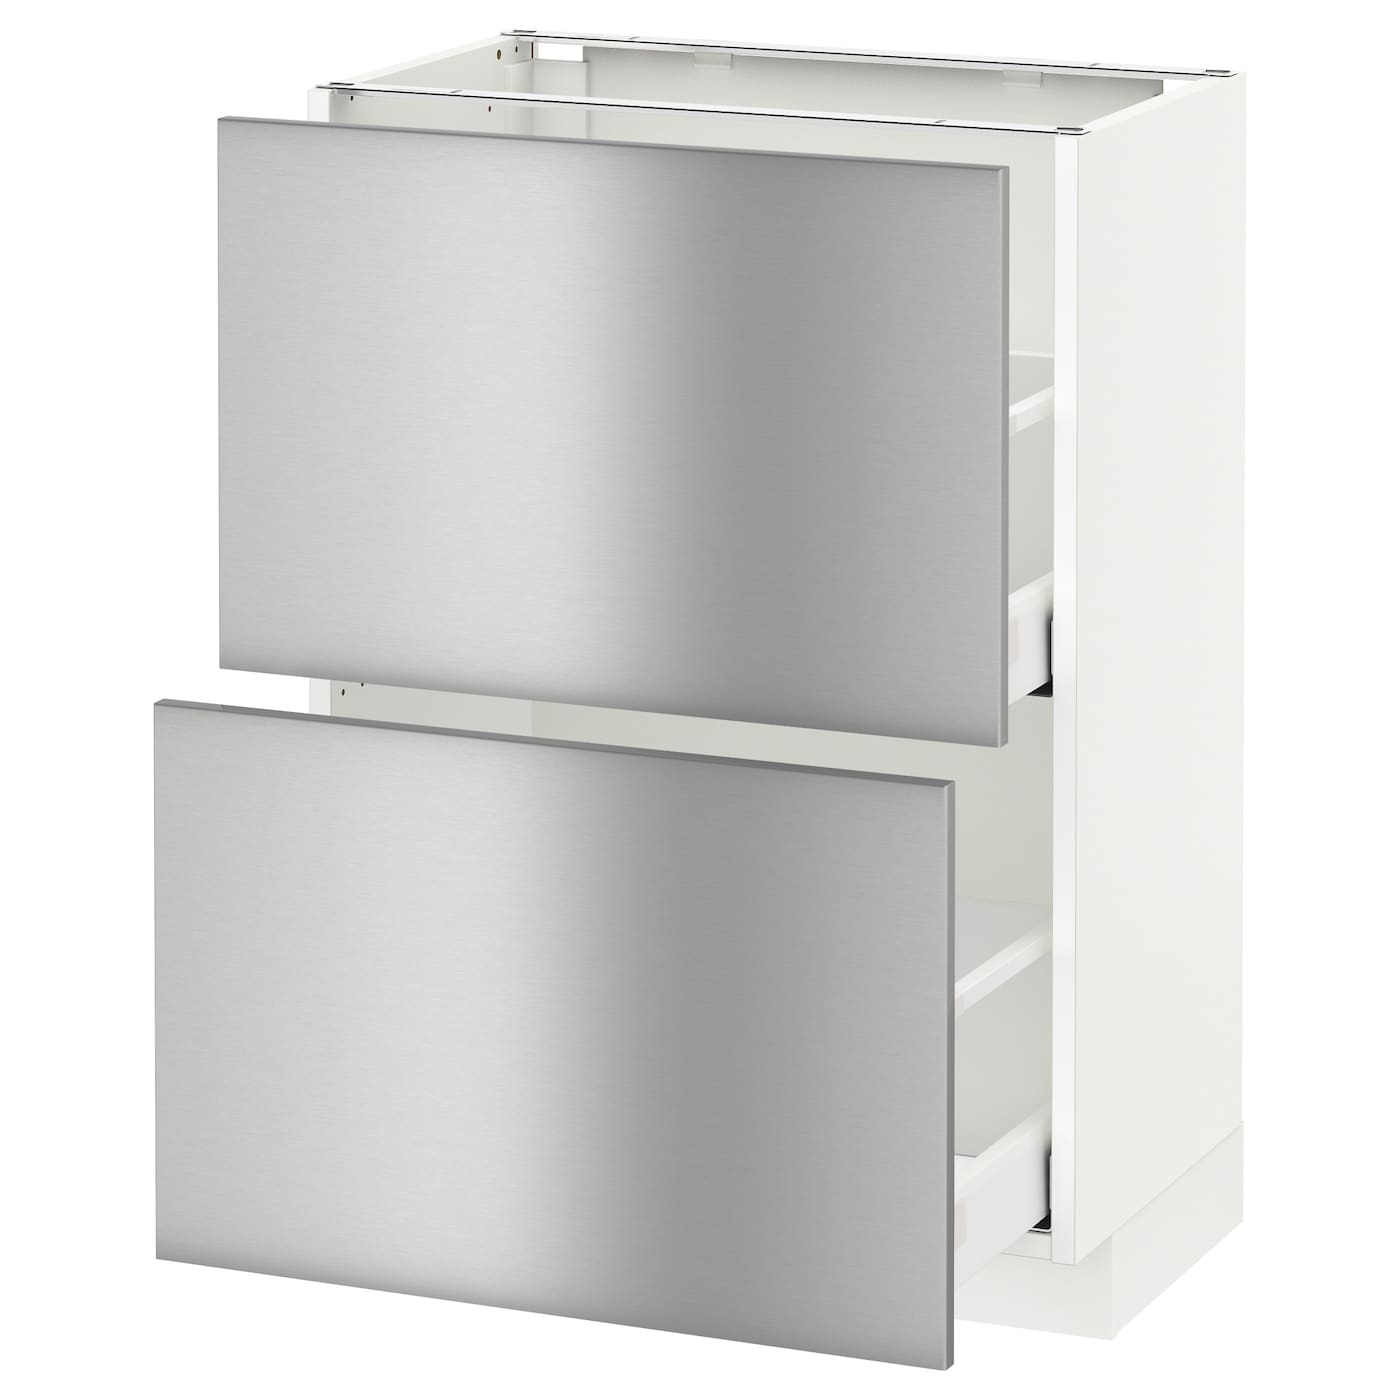 Metod maximera base cabinet with 2 drawers white grevsta for Stainless steel kitchen cabinet price